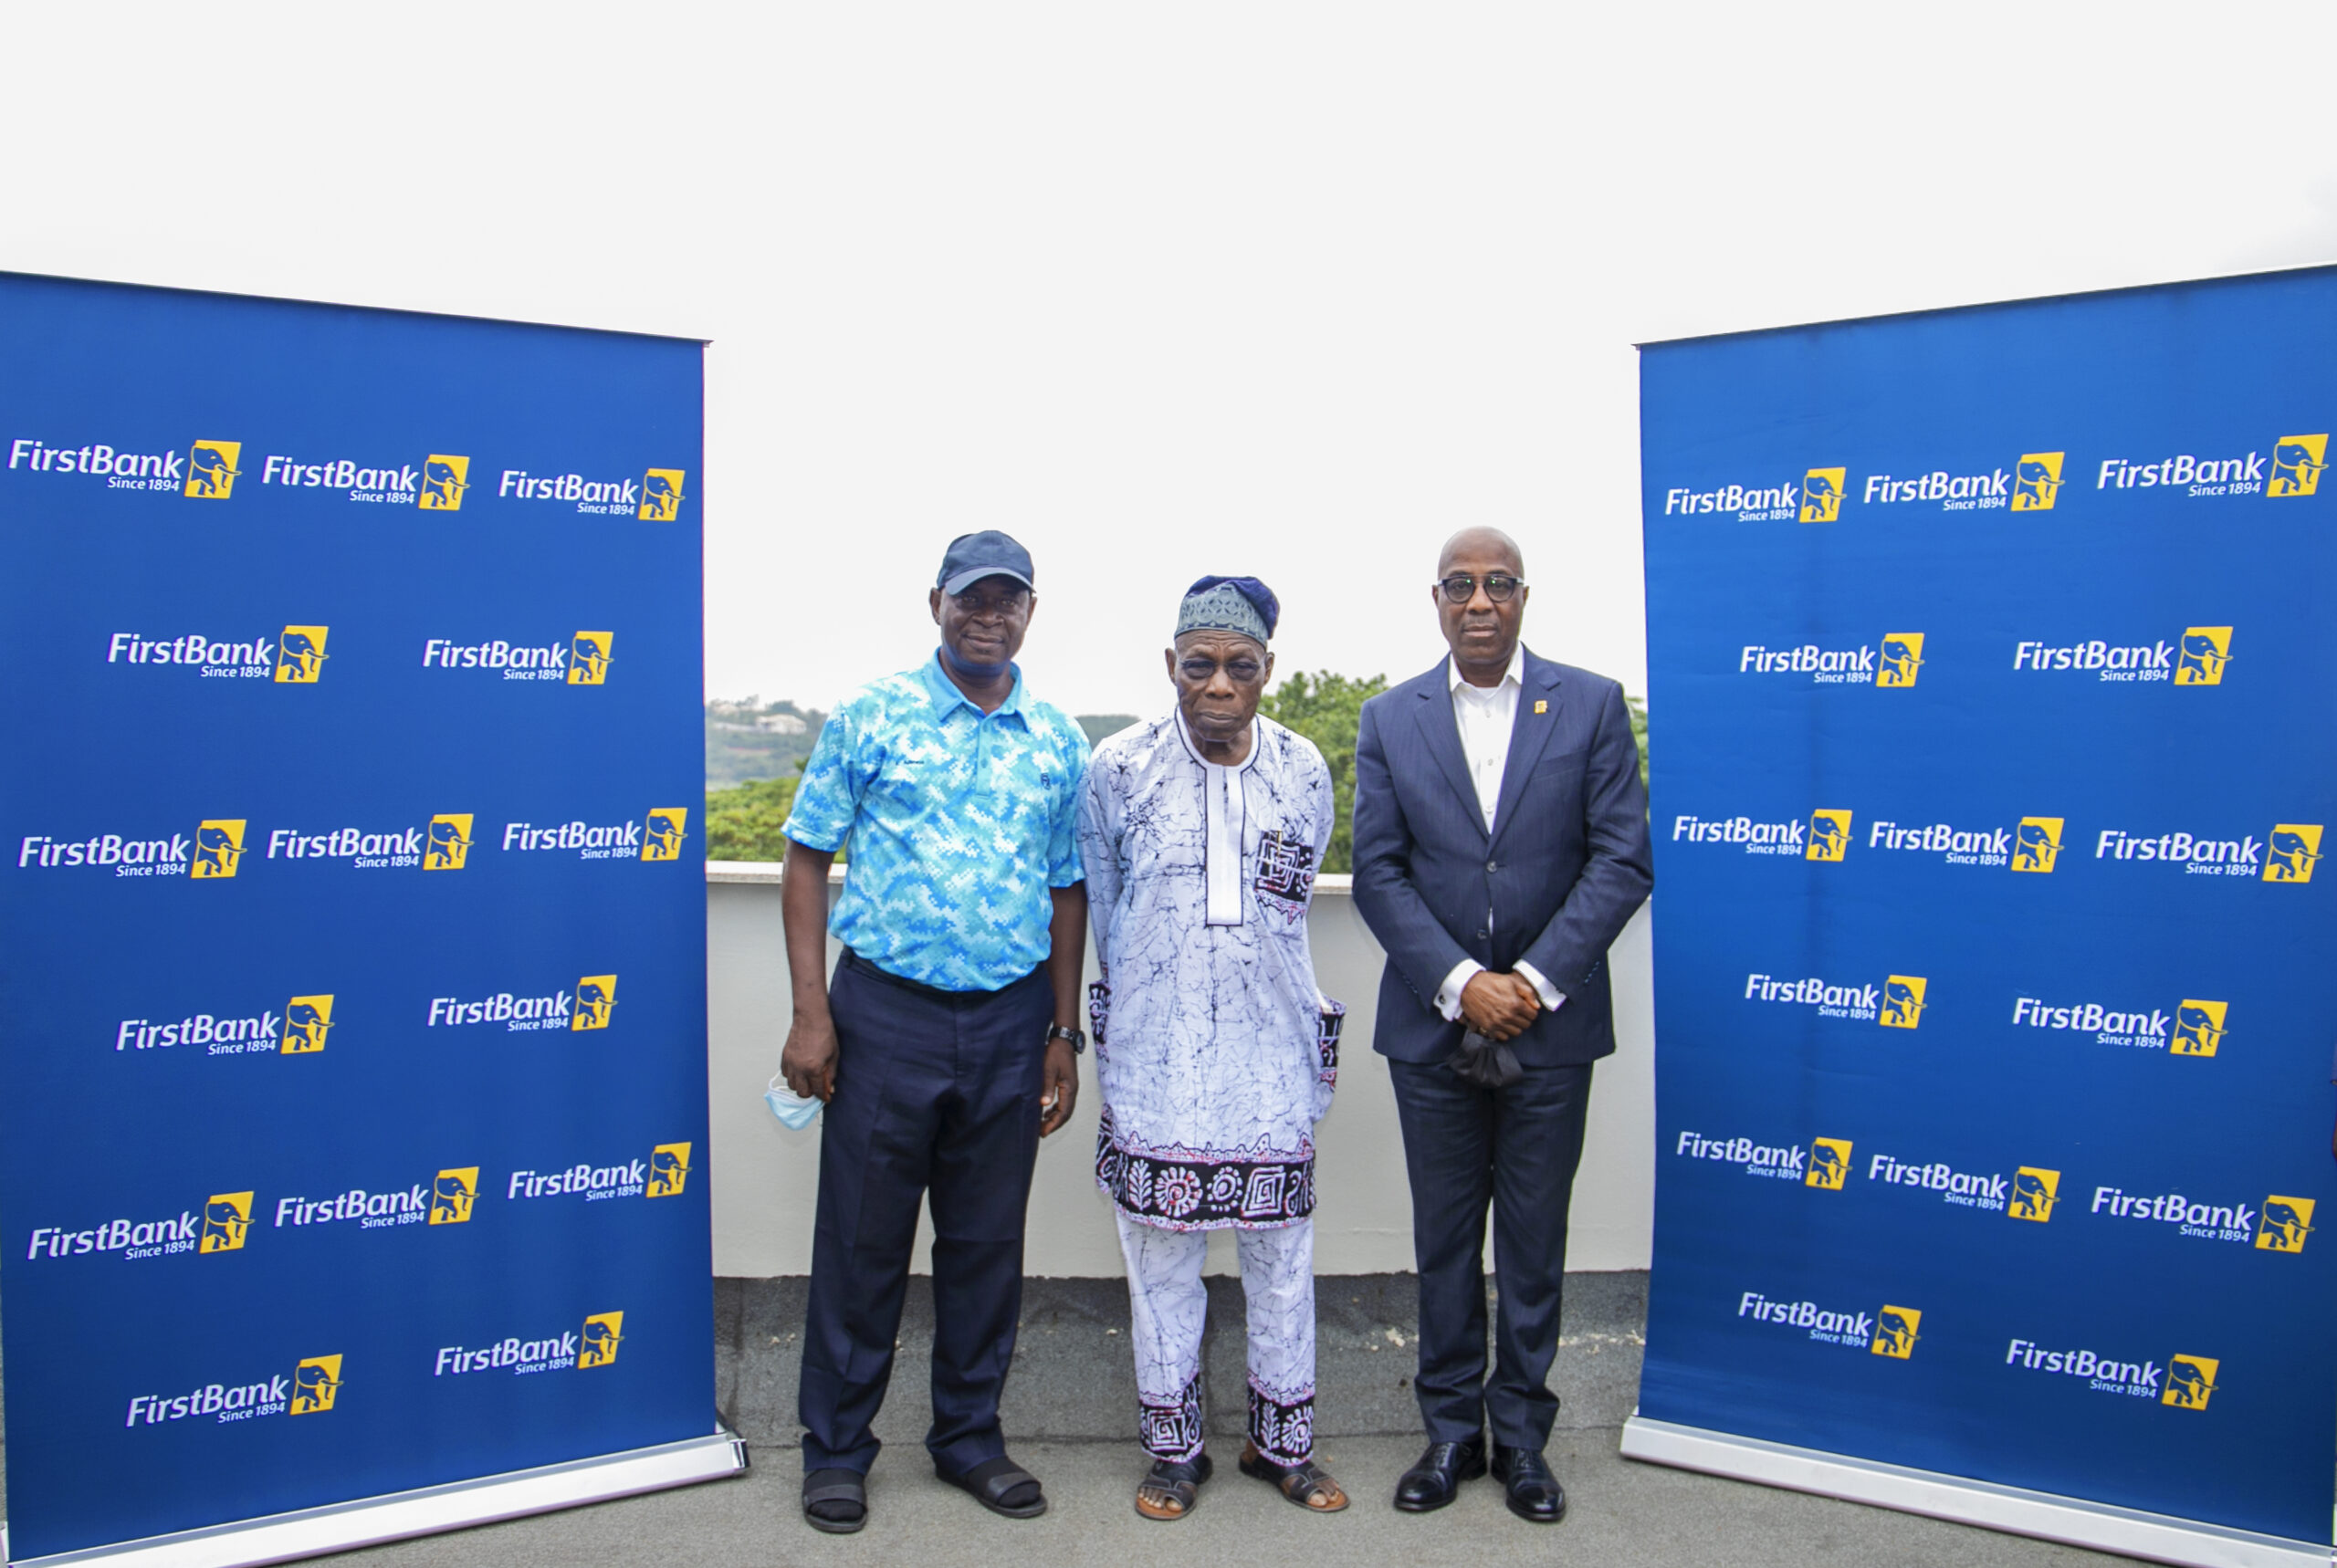 Chief Olusegun Obasanjo, former President, Federal Republic of Nigeria (middle); Mr. Tunde Owolabi, Group Executive, Retail Banking (Lagos & West), First Bank of Nigeria Limited (right) and Mr. Kola Adeneye, Captain of Abeokuta Golf Club (left), following a courtesy visit to Chief Olusegun Obasanjo in Abeokuta on Monday, ahead of the FirstBank sponsored 5th Olusegun Obasanjo Open Golf Championship organised by Abeokuta Golf Club, scheduled for this weekend.